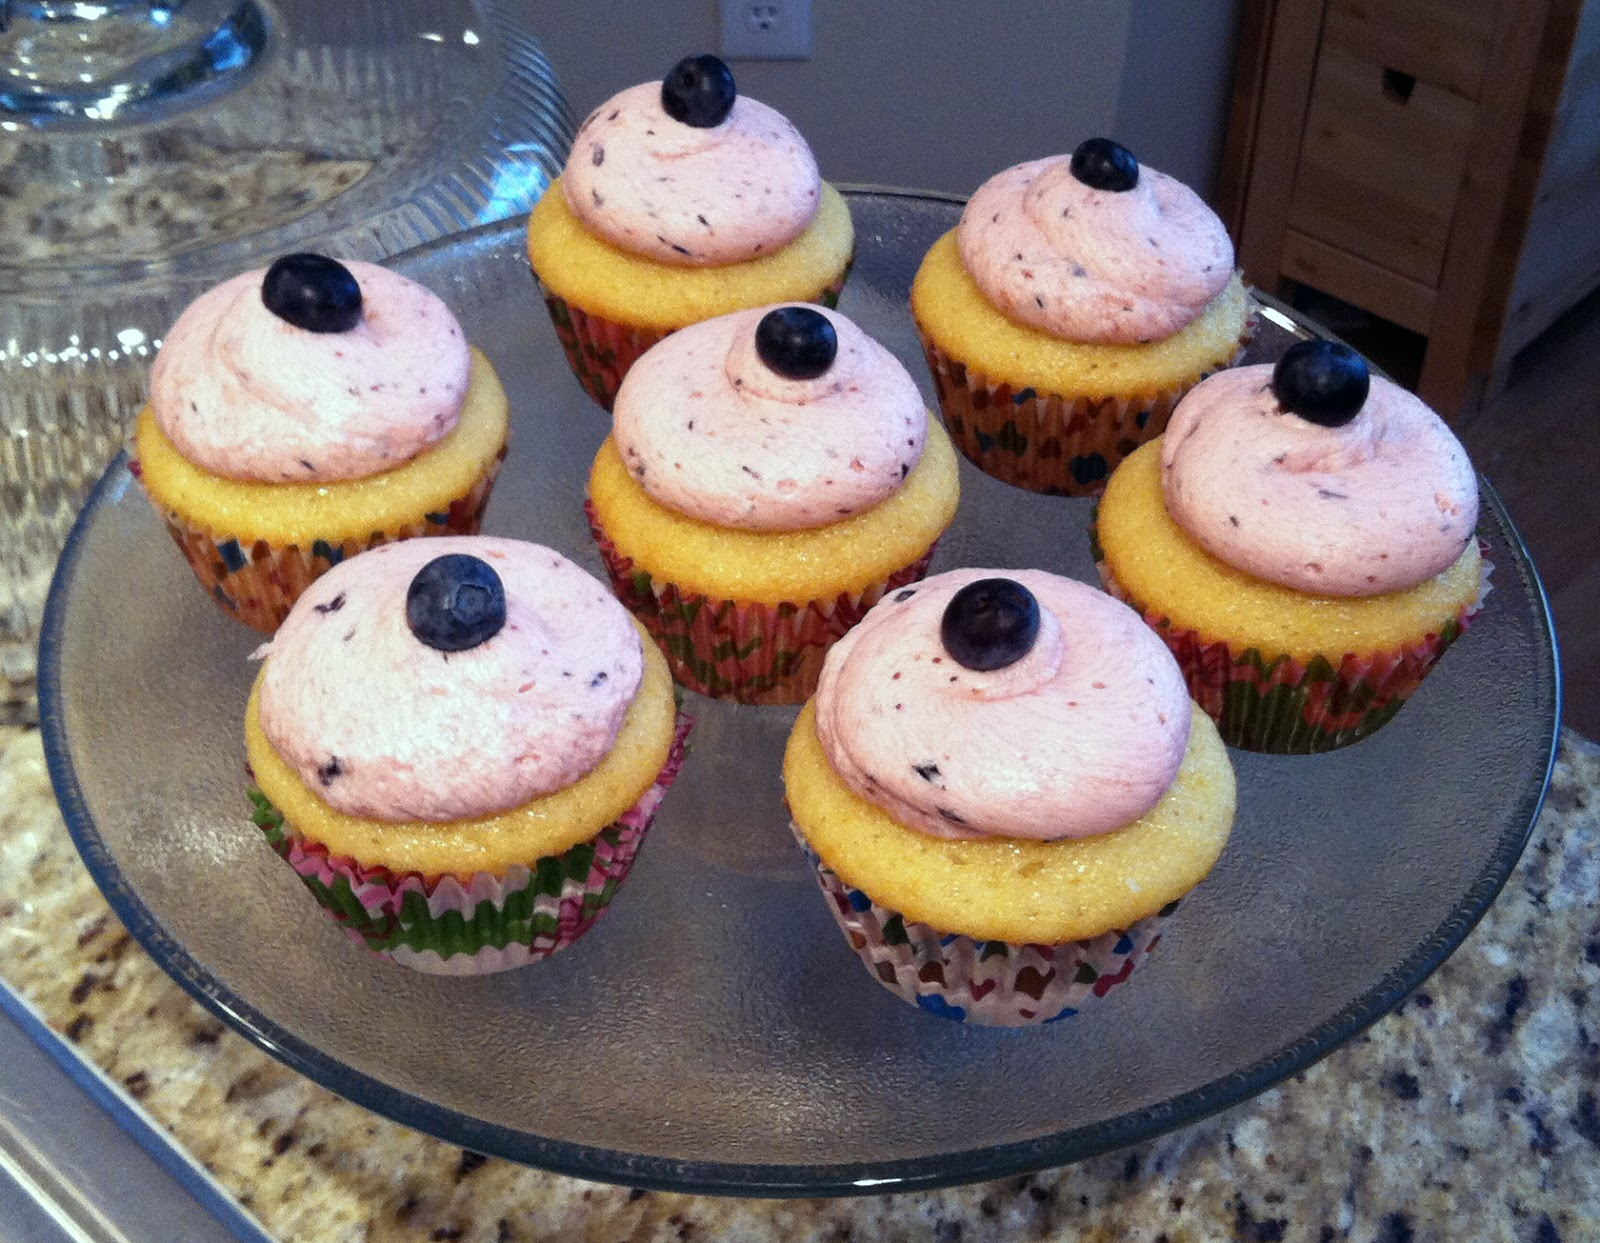 The Great Cupcake Adventure: Lemon Cupcakes with Blueberry Icing